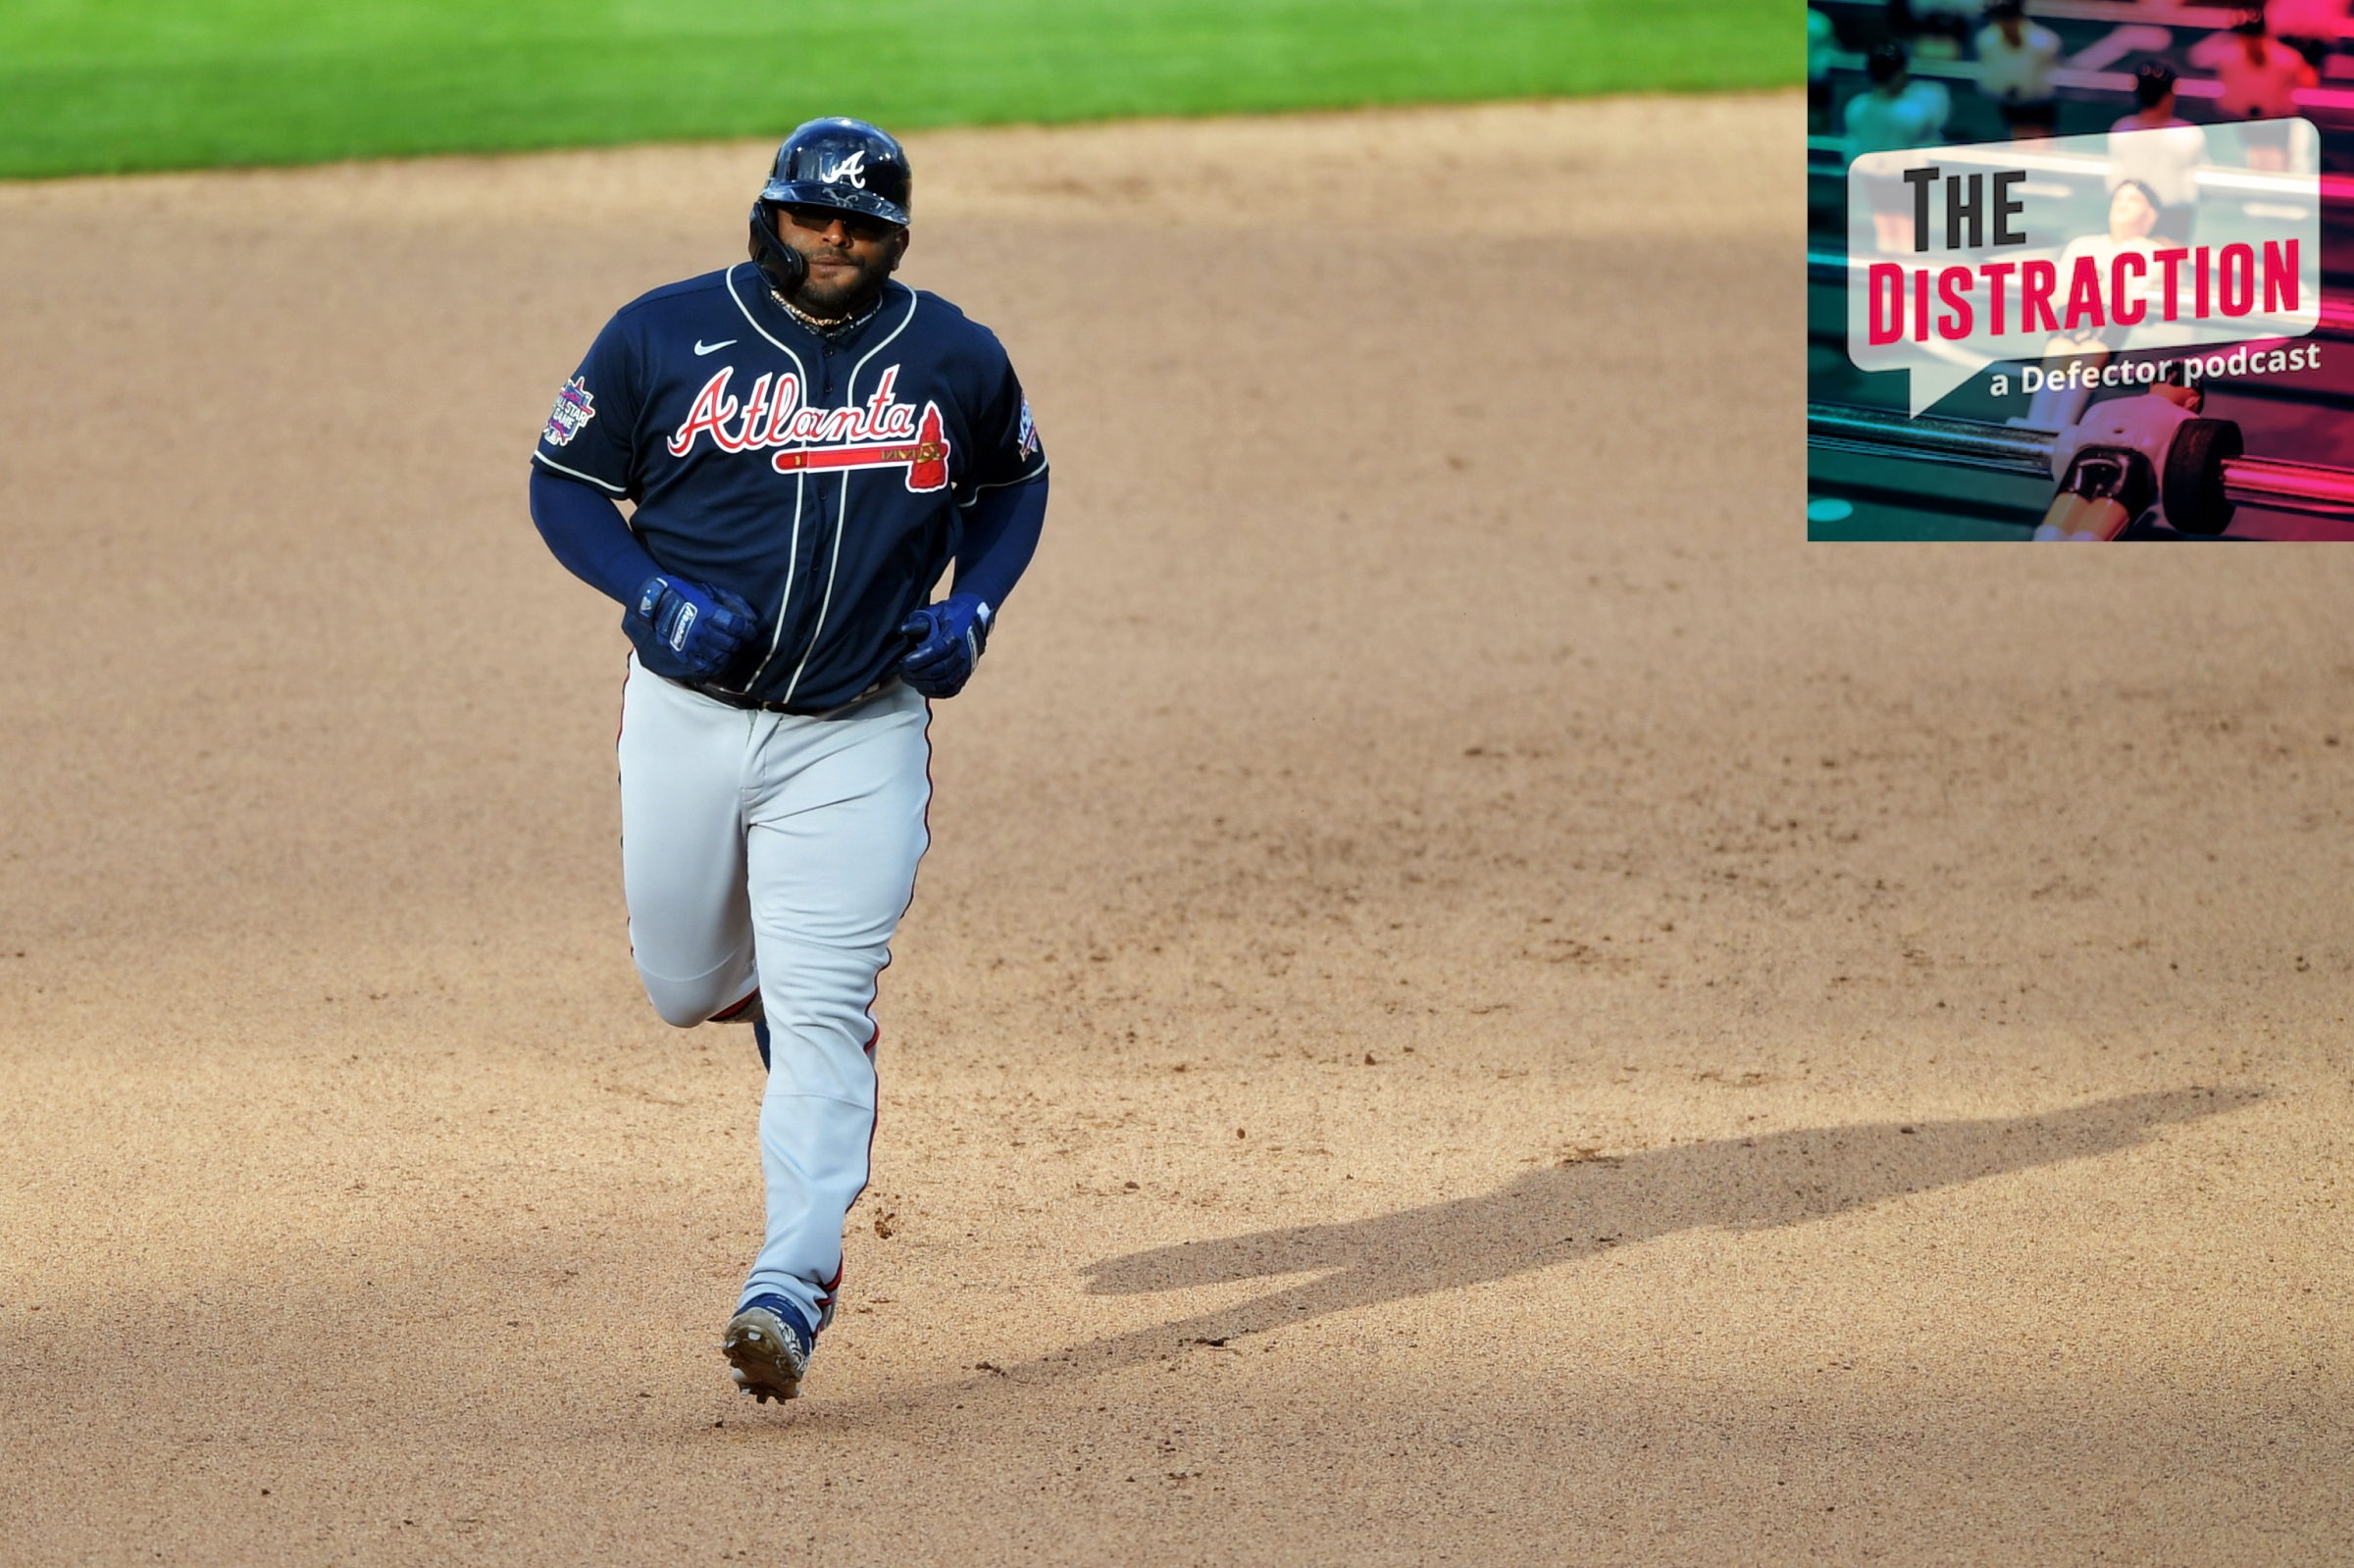 Pablo Sandoval circles the bases after homering, blithely unaware of the controversy to come.